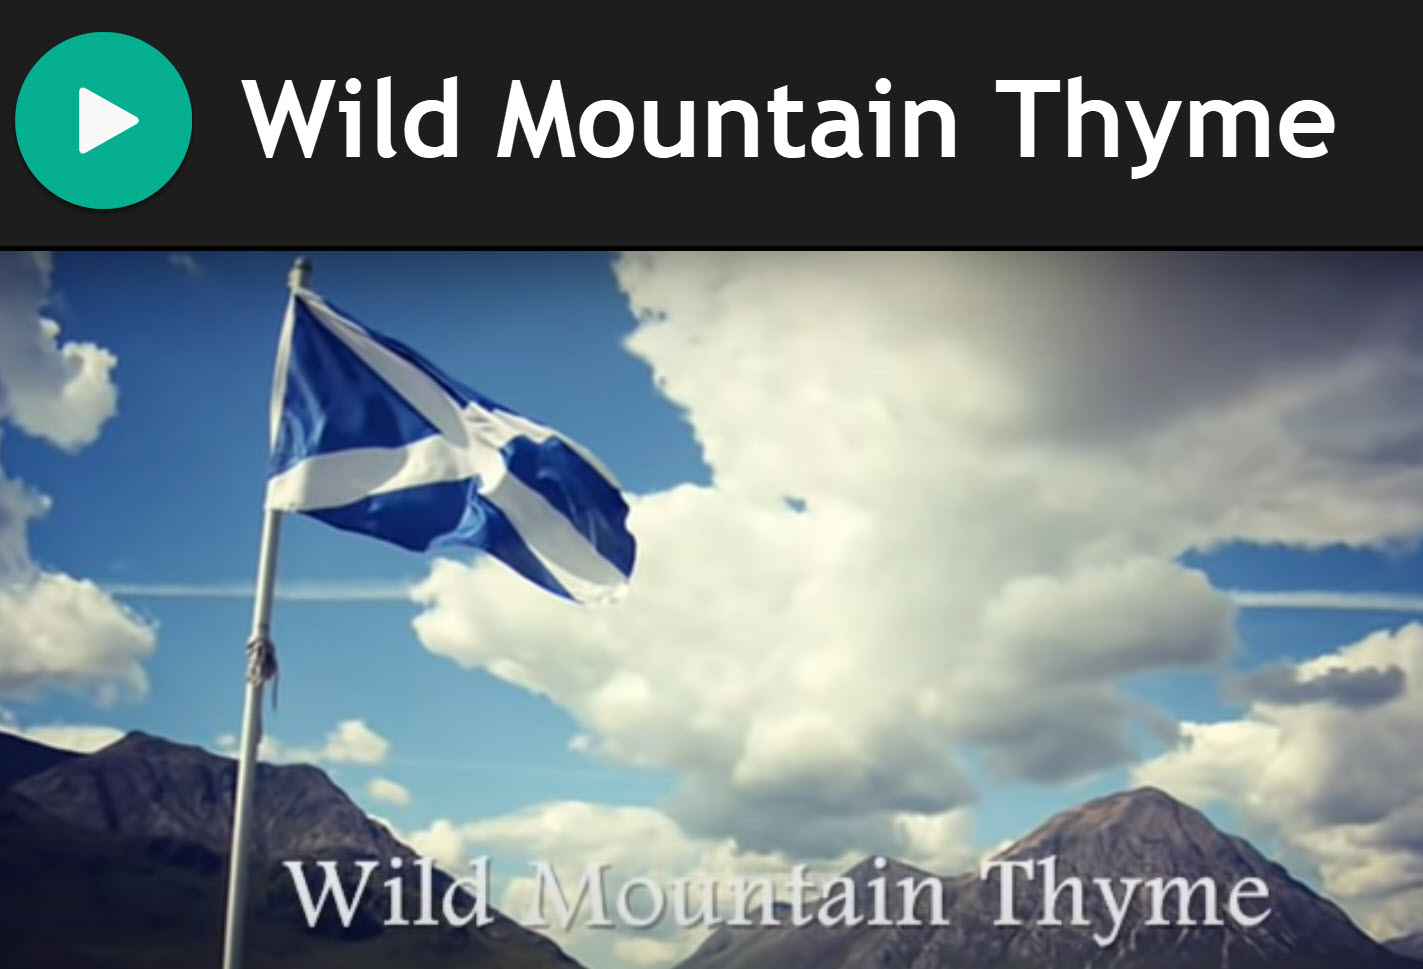 Wild Mountain Thyme by Sarah Calderwood for Bagpipes